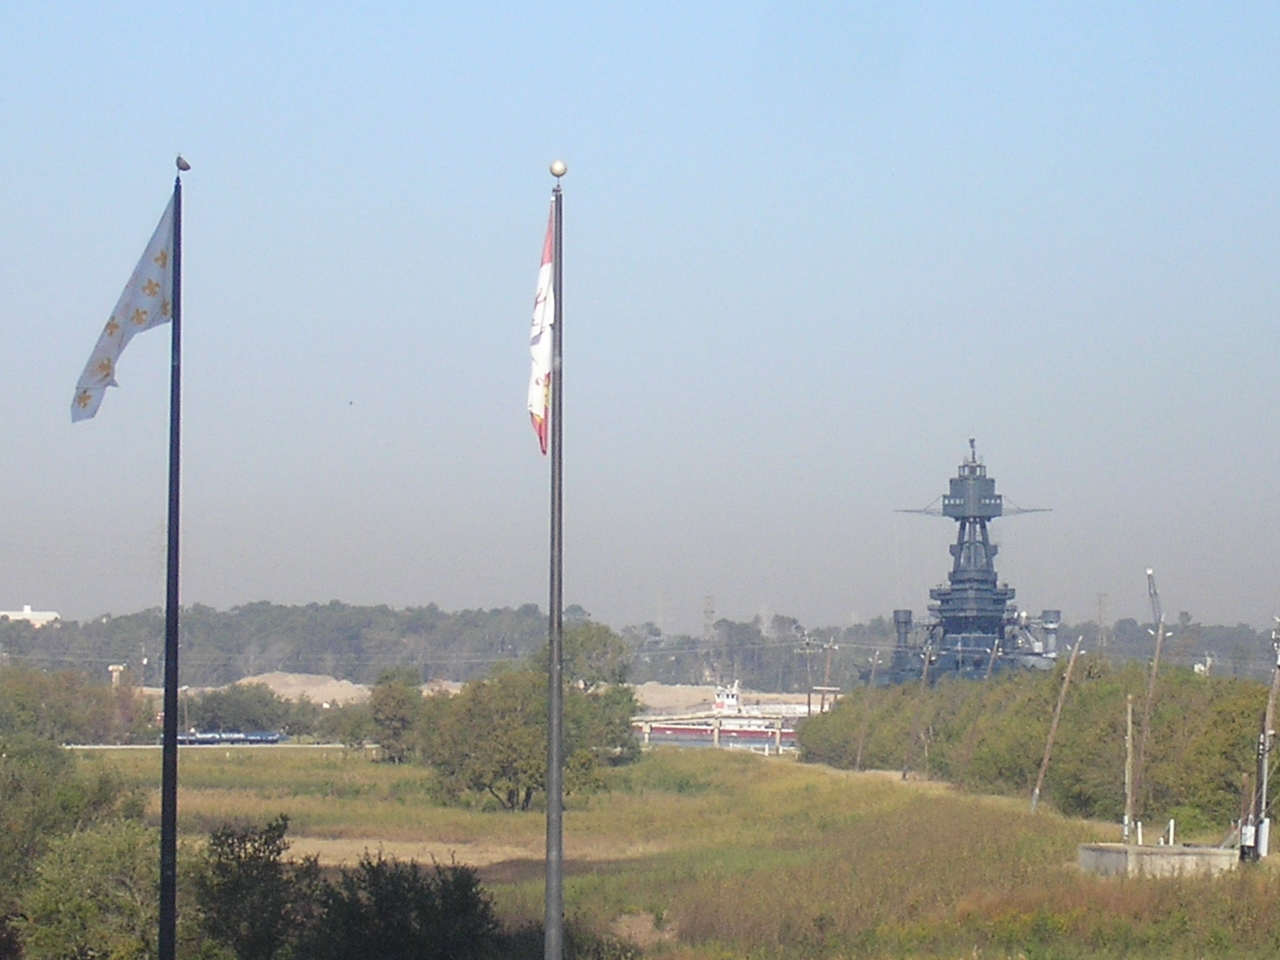 This view of the Texas is from the steps of the Monument